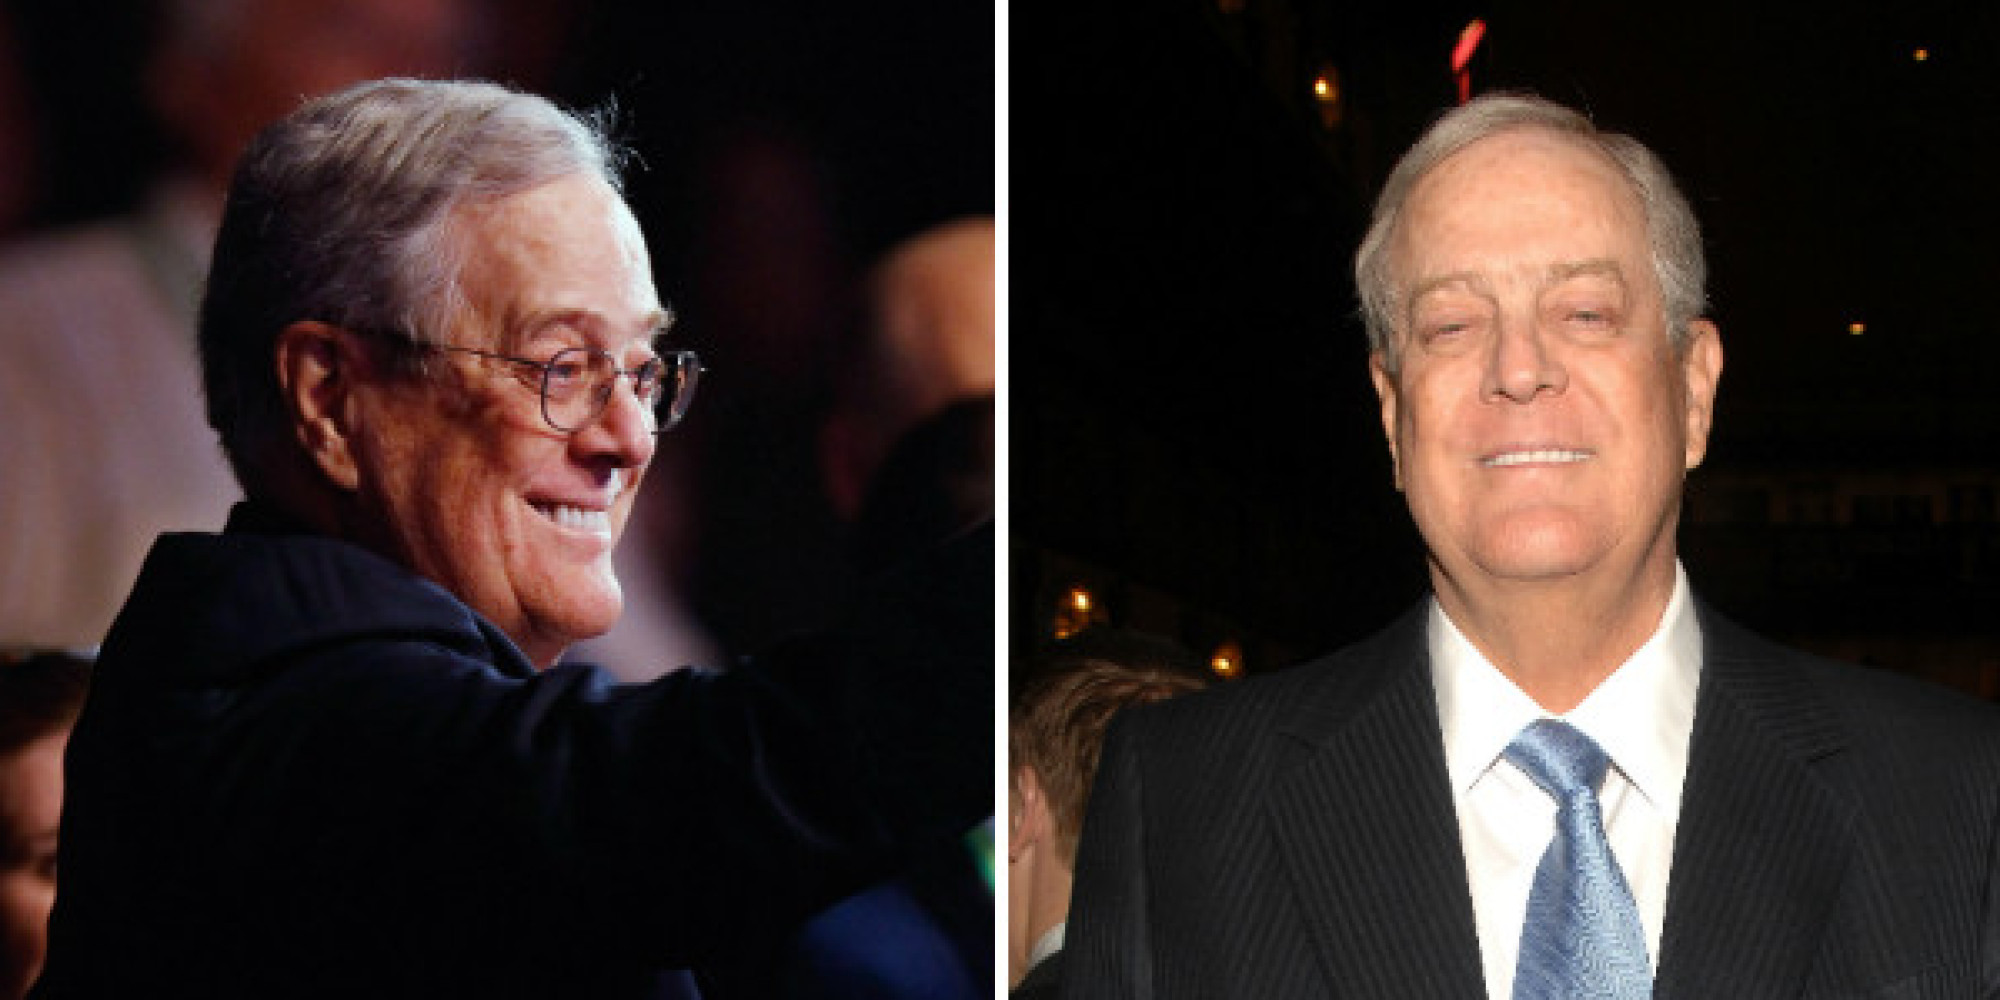 koch brothers The political activities of the koch brothers include the financial and political influence of charles g and david h koch on united states politicsthis influence is seen both directly and indirectly via various political and public policy organizations supported by the koch brothers.